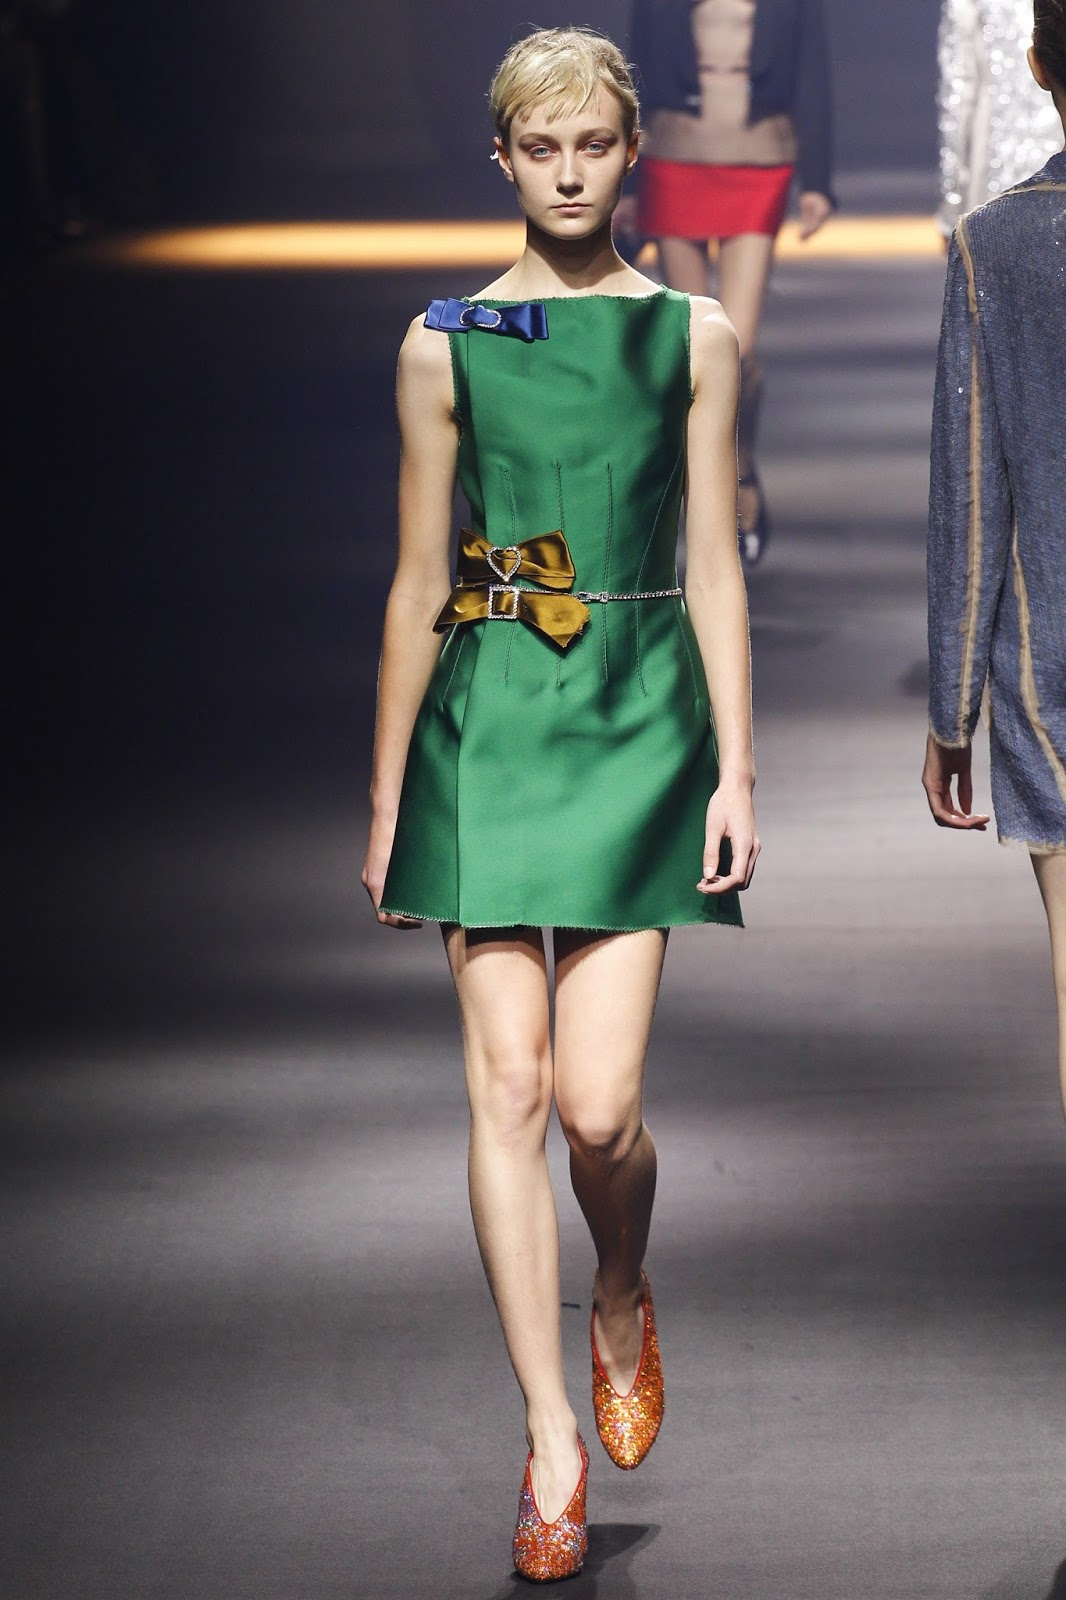 Pantone colour report & spring summer 2016 fashion trends / green flash at Lanvin Spring/Summer 2016 via www.fashionedbylove.co.uk British fashion & style blog